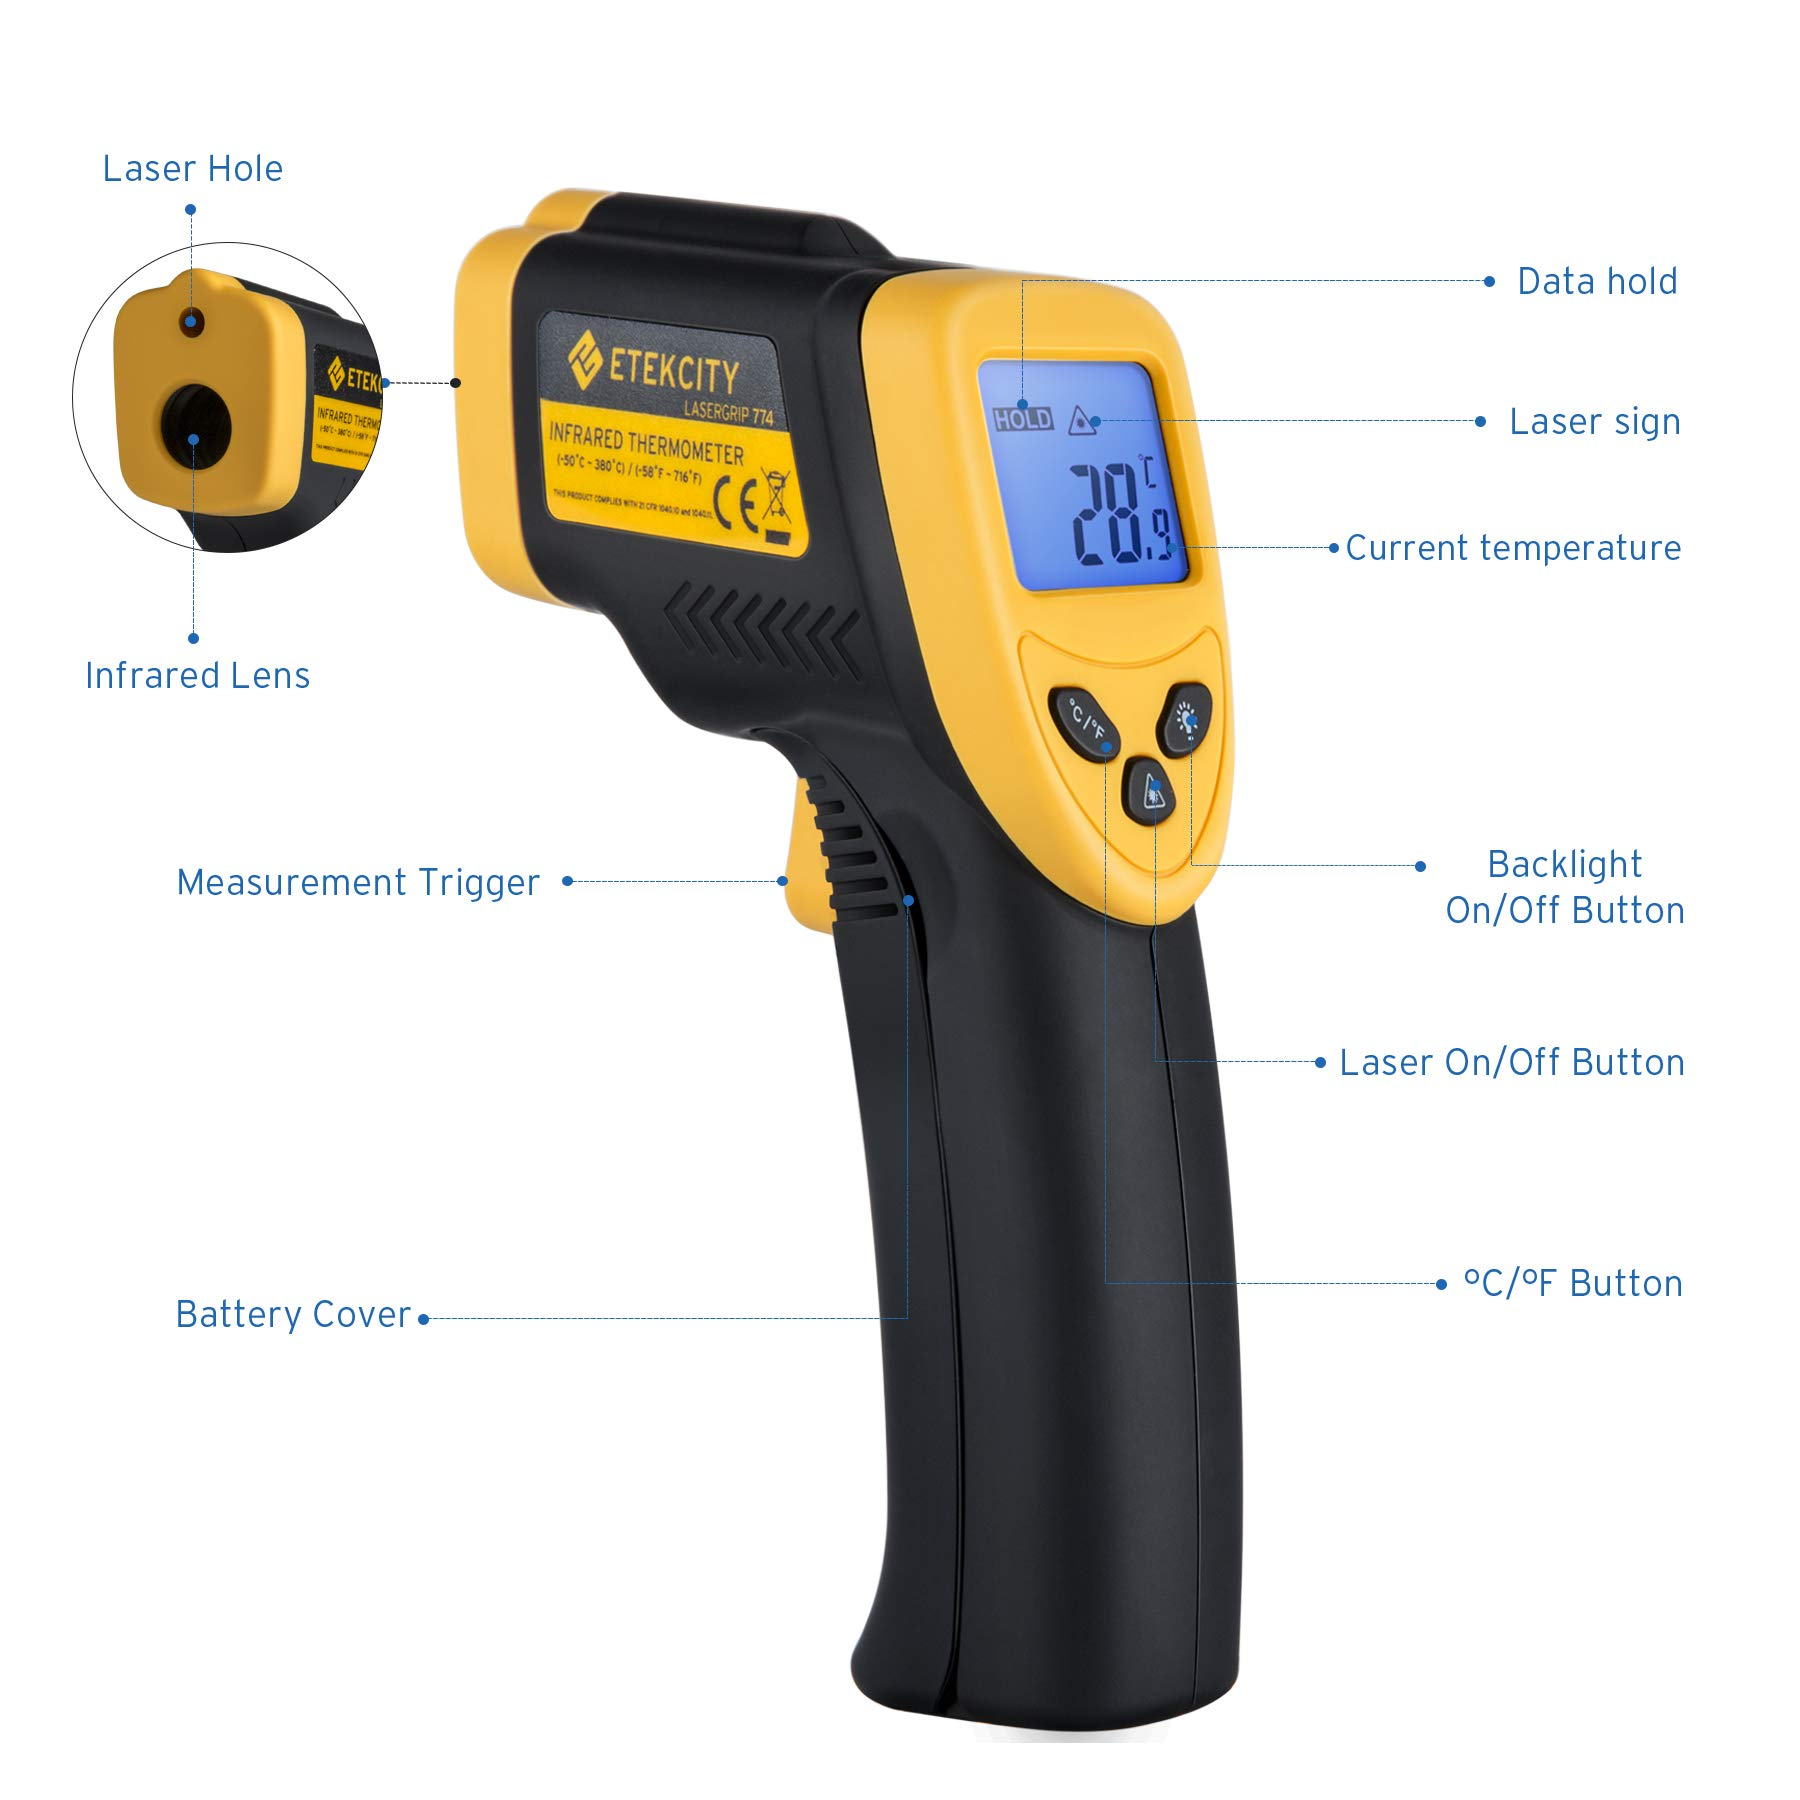 Etekcity Lasergrip 774 Non-contact Digital Laser Infrared Thermometer Temperature Gun -58℉~ 716℉ (-50℃ ~ 380℃), Yellow and Black by Etekcity (Image #1)